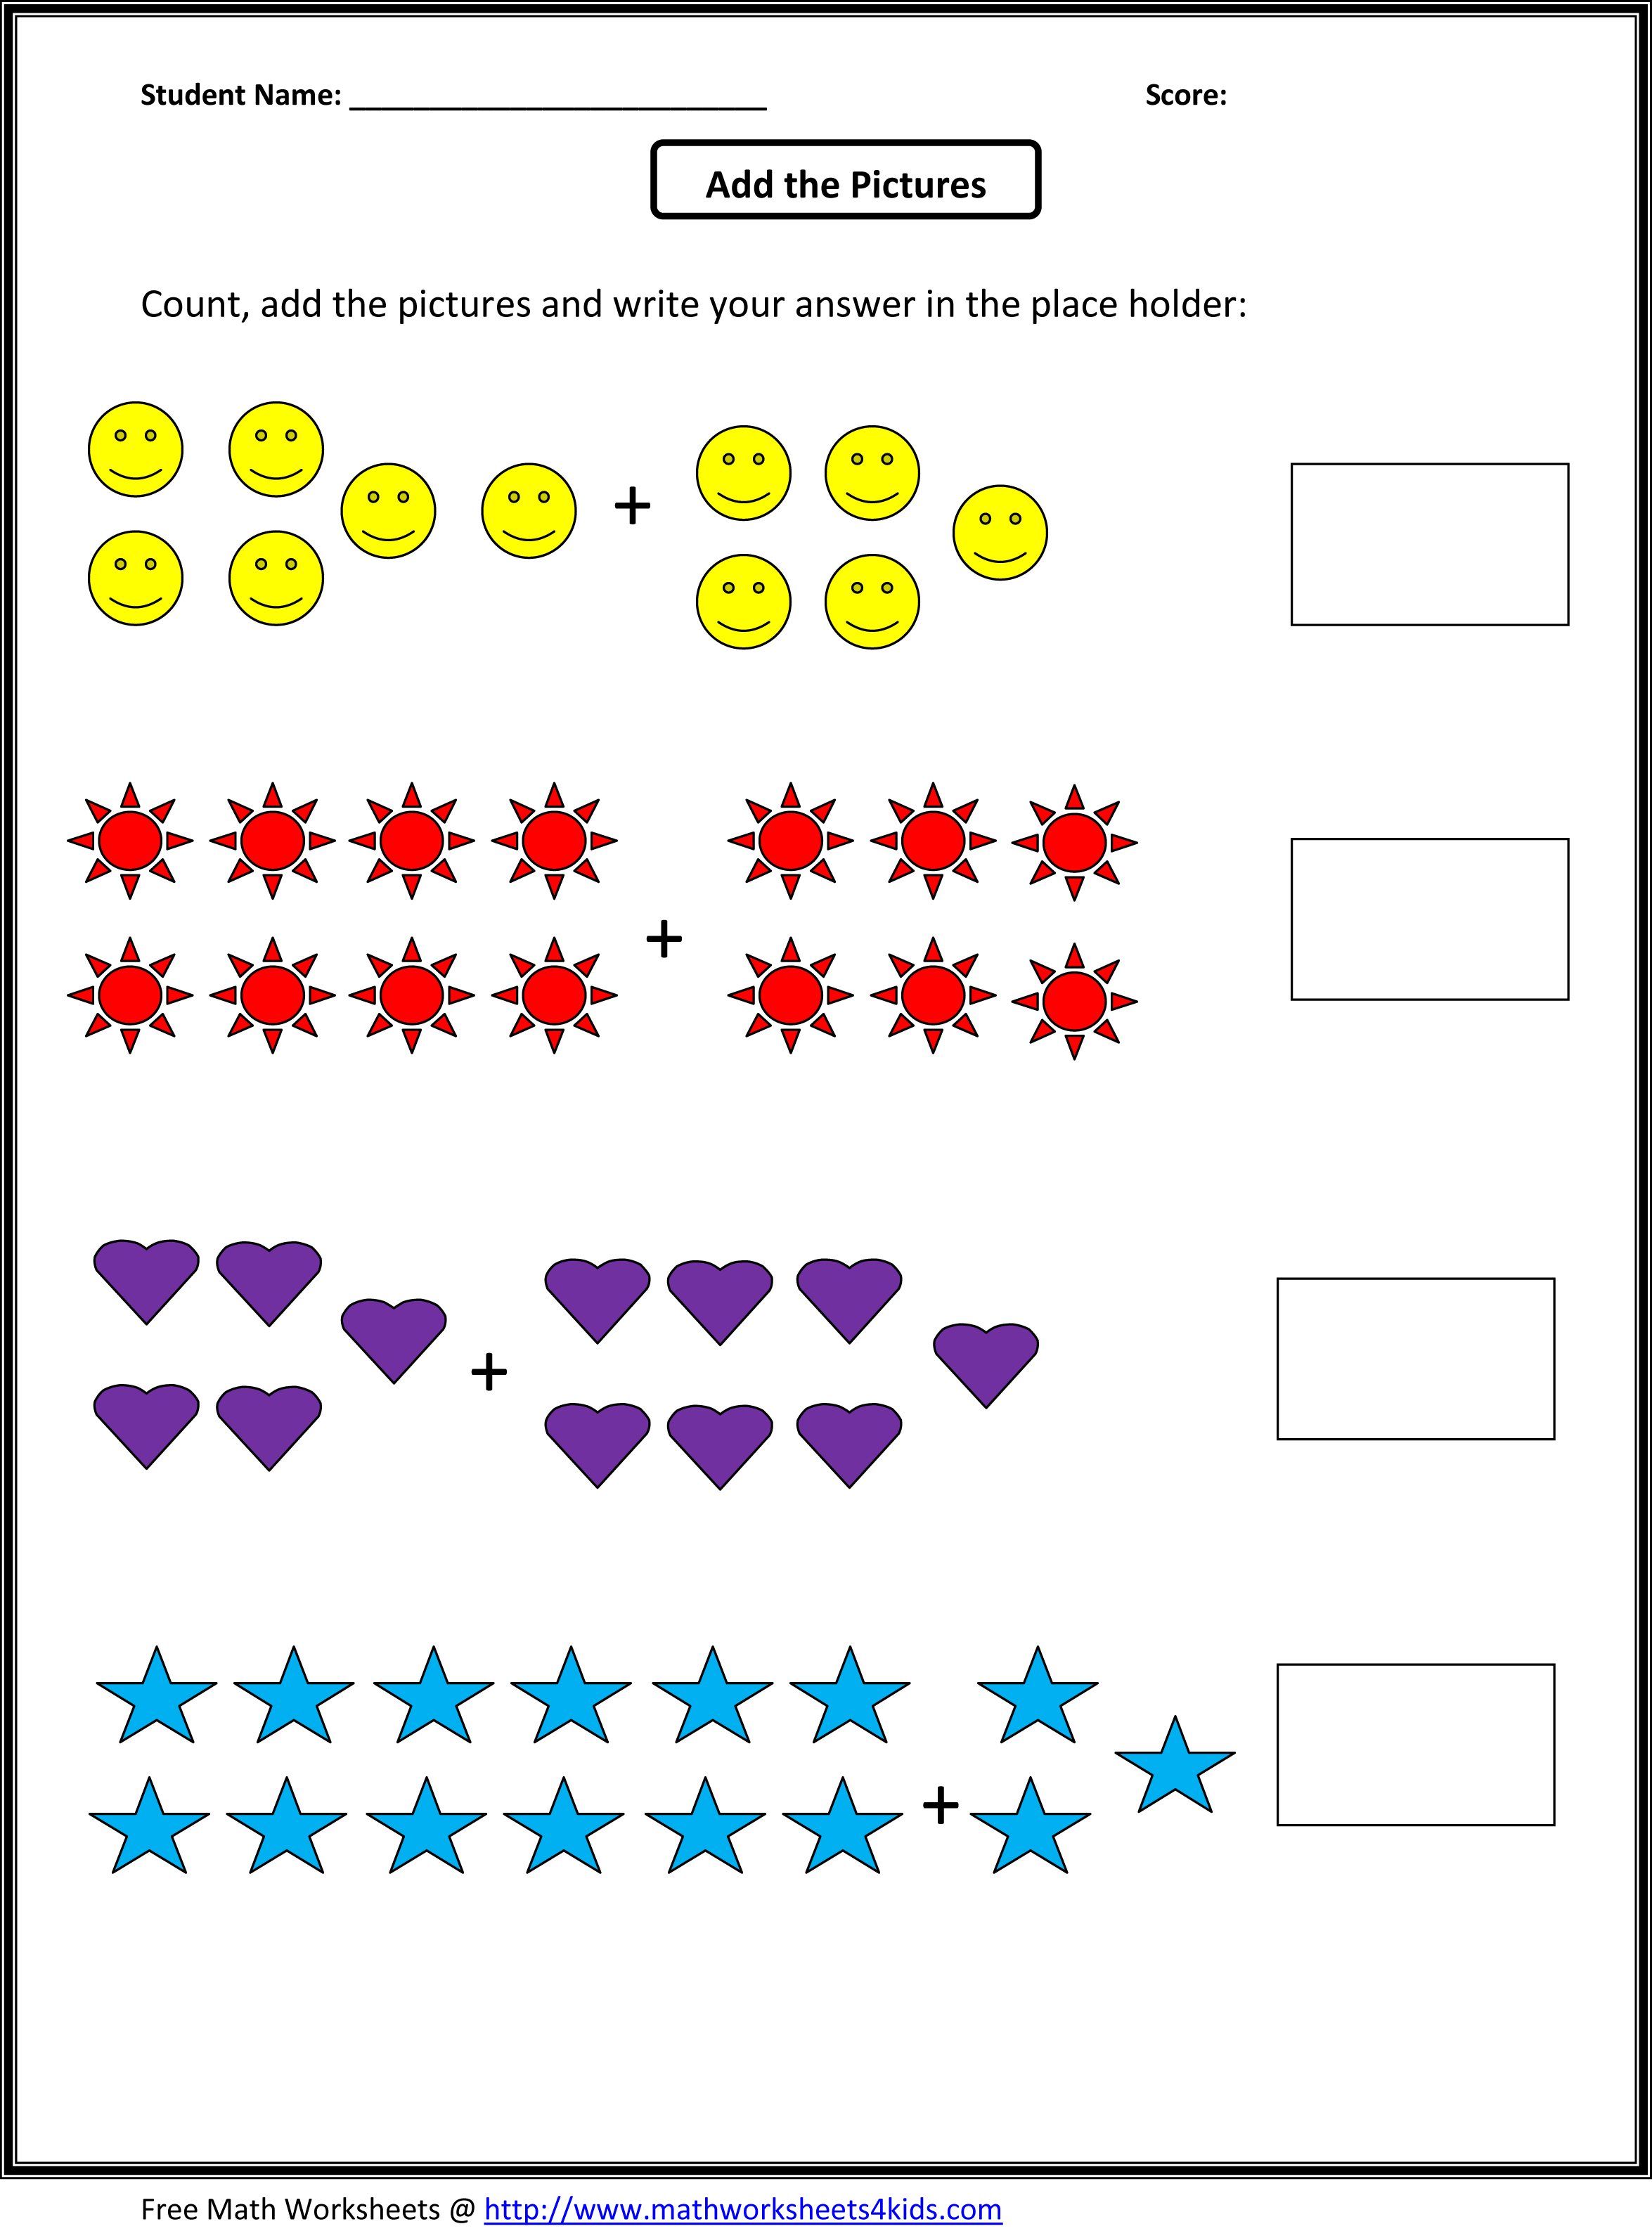 Proatmealus  Surprising Grade  Maths Worksheet  Reocurent With Outstanding Math Worksheets For St Grade Free  Reocurent With Agreeable Multiplication Fractions Worksheet Also  States And Capitals Worksheets In Addition Math Formulas Worksheet And Starting A Budget Worksheet As Well As Prepositions Worksheets Pdf Additionally Electric Circuits Worksheets From Reocurentcom With Proatmealus  Outstanding Grade  Maths Worksheet  Reocurent With Agreeable Math Worksheets For St Grade Free  Reocurent And Surprising Multiplication Fractions Worksheet Also  States And Capitals Worksheets In Addition Math Formulas Worksheet From Reocurentcom